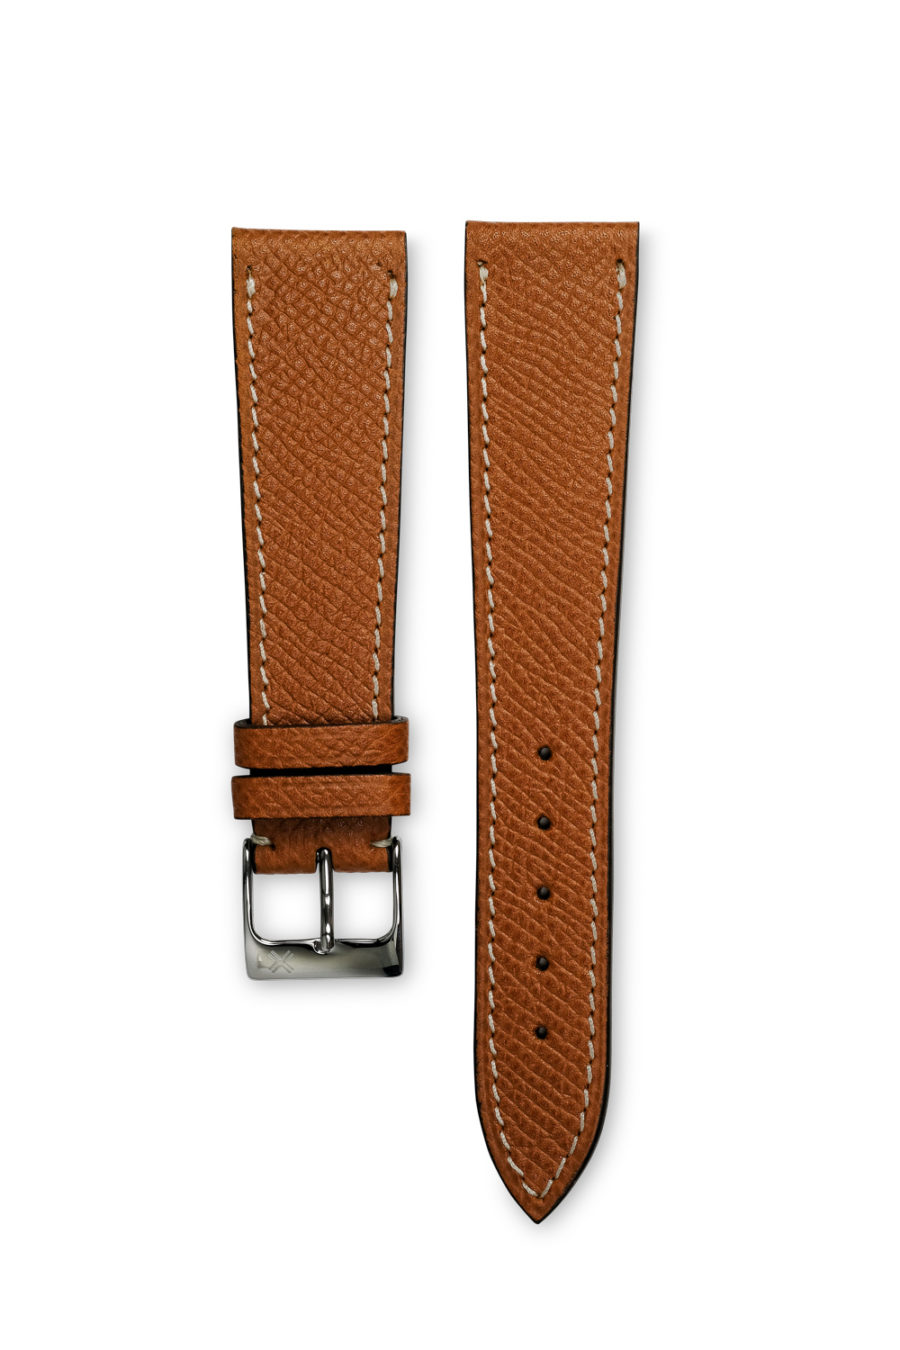 Grained light brown tan leather watch strap - cream stitching - LUGS brand